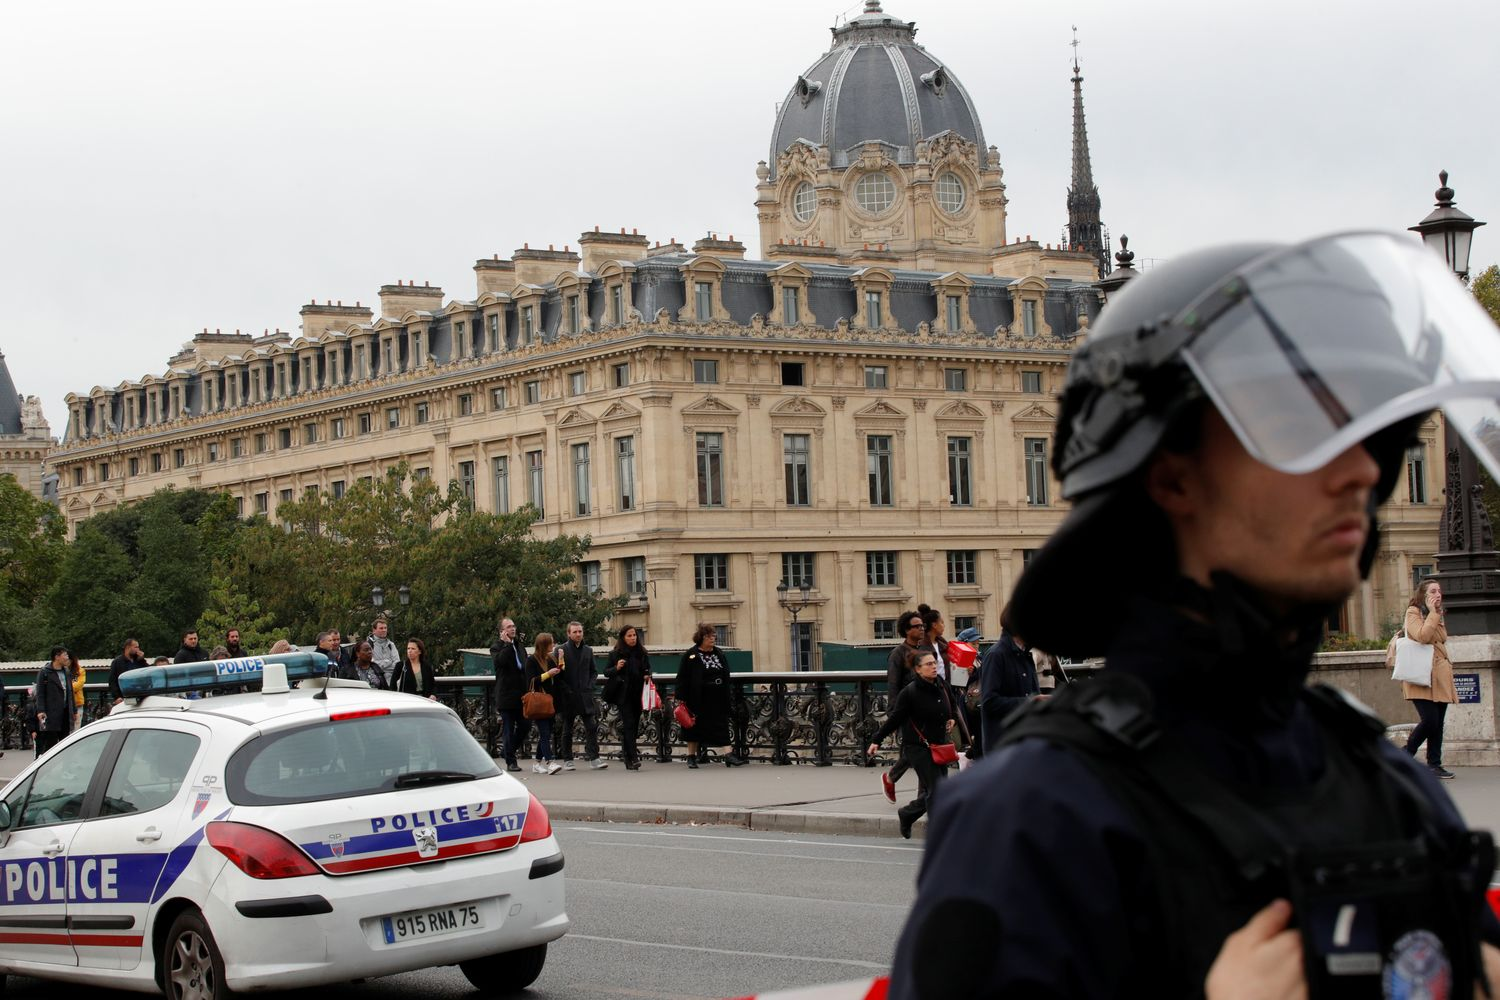 Four people killed after knife attack in headquarters of Paris police